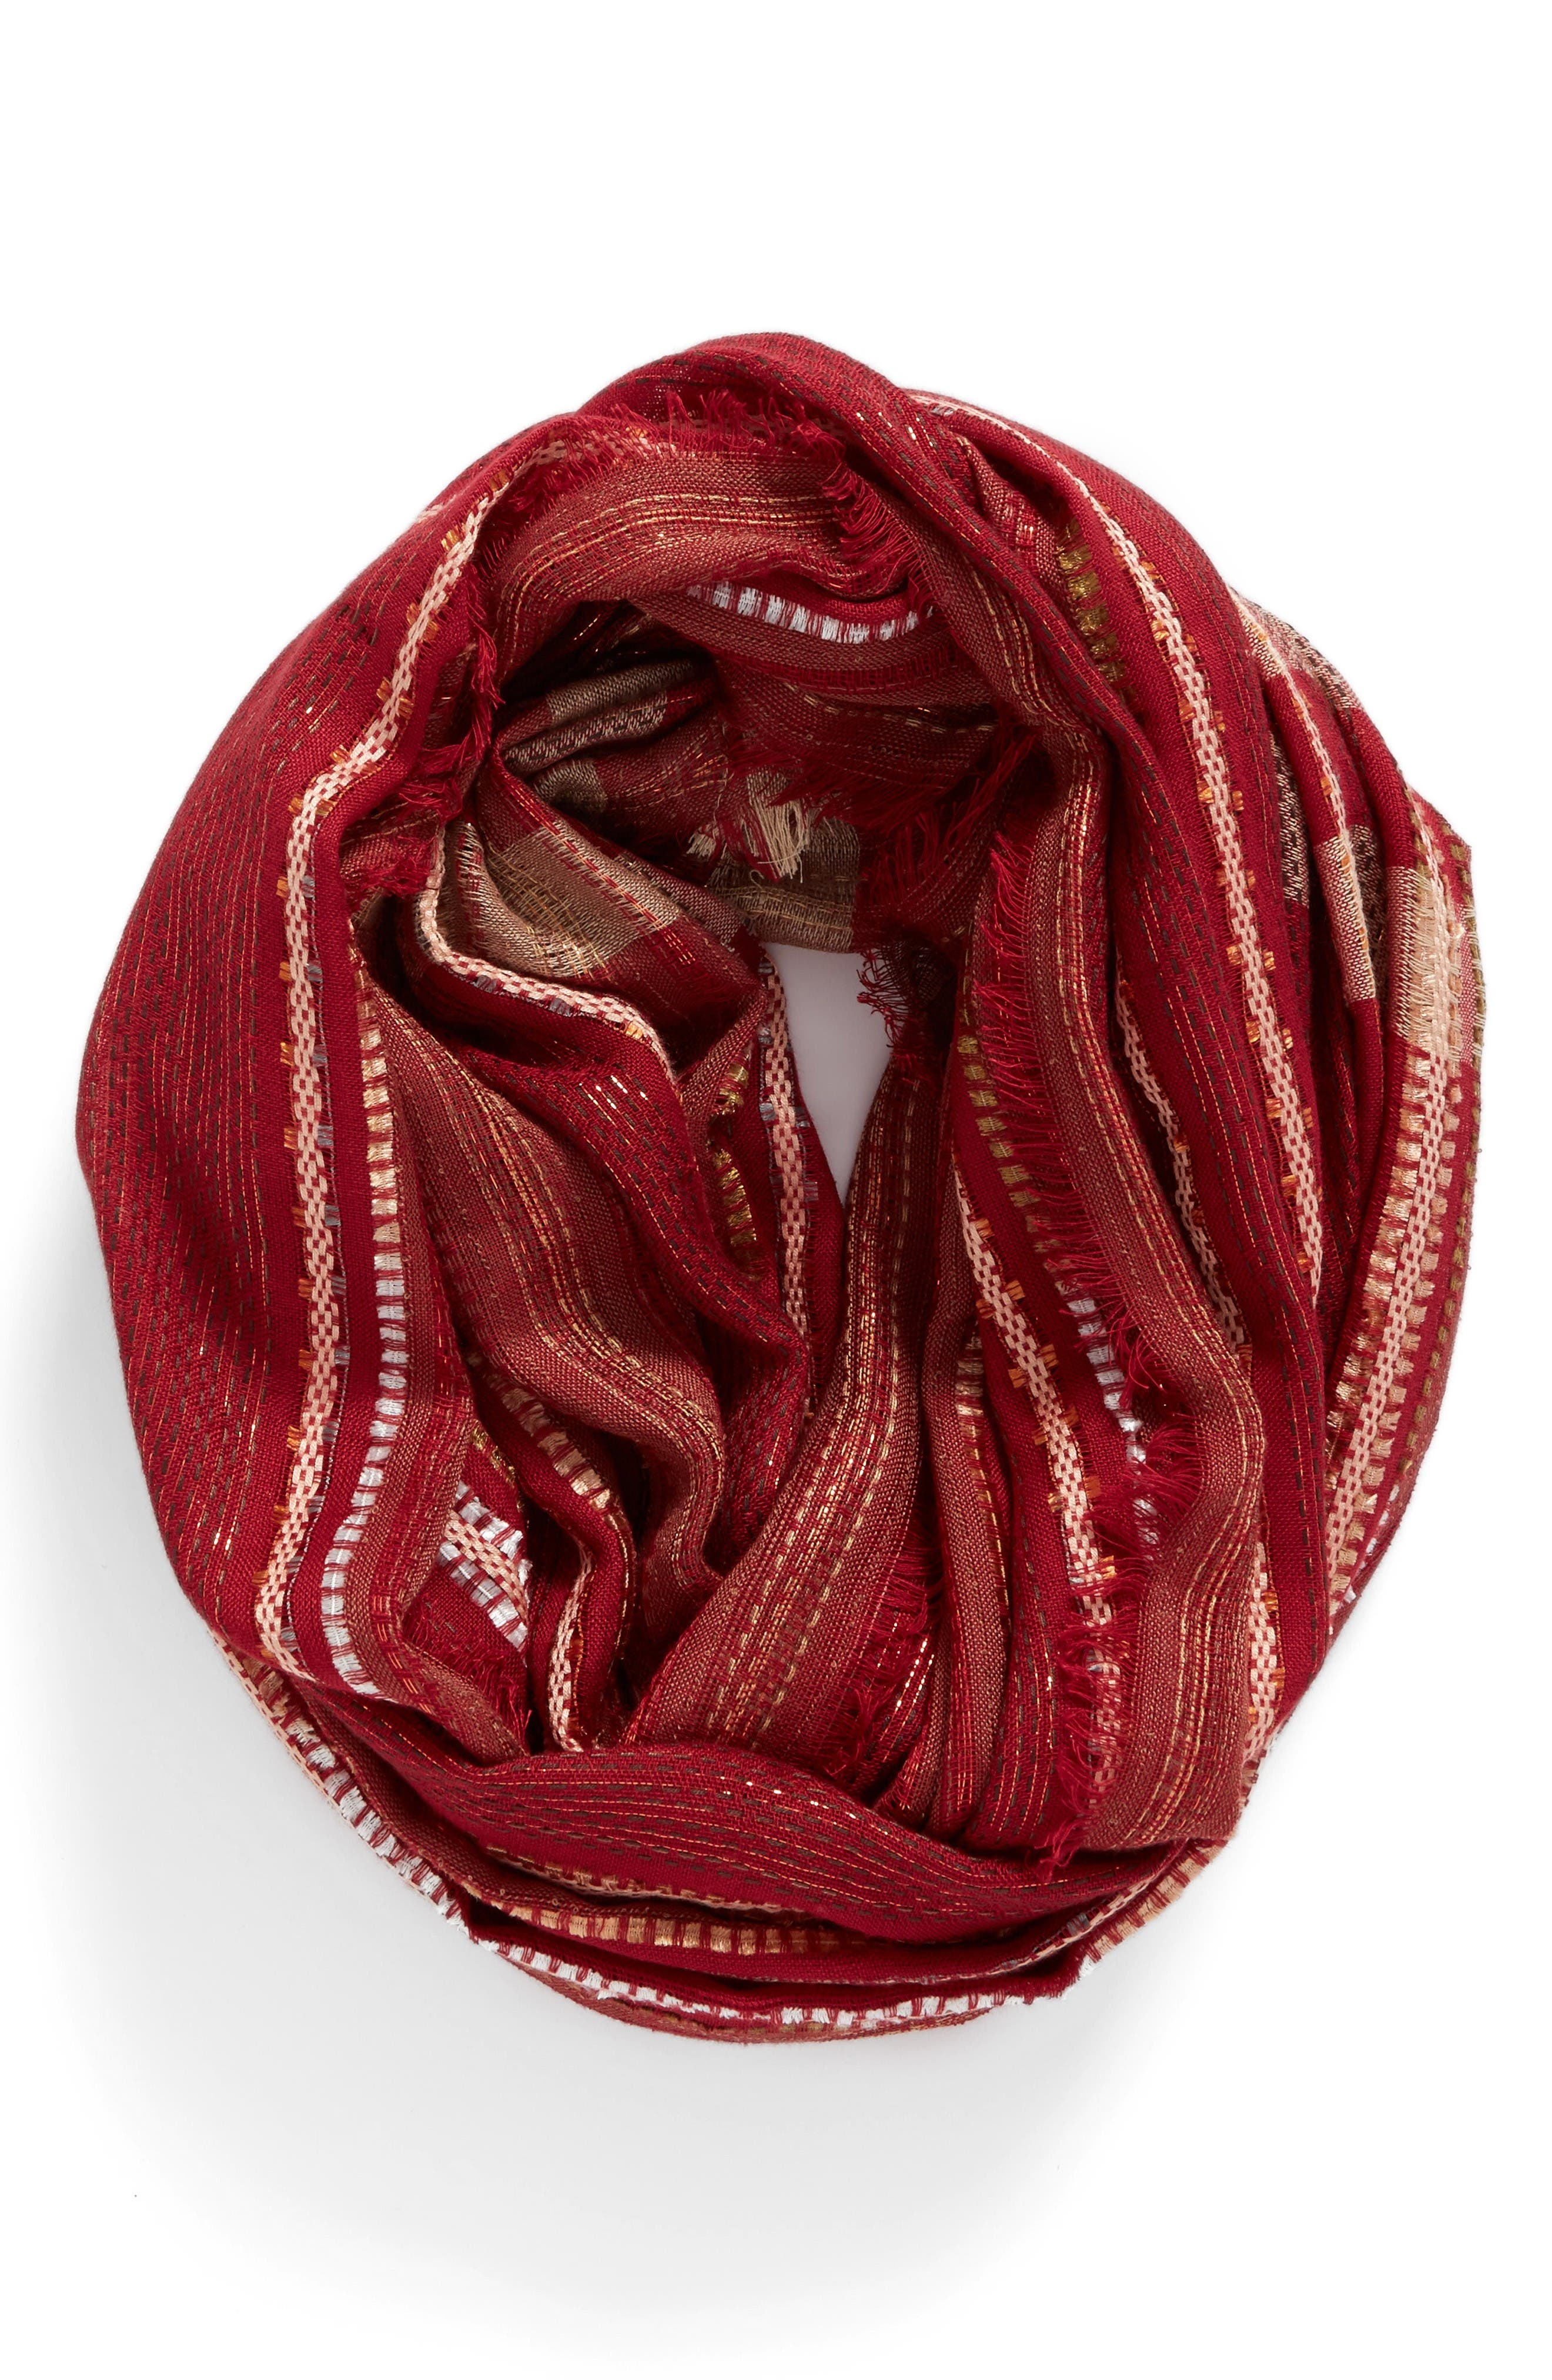 Alternate Image 1 Selected - La Double 7 Metallic Plaid Infinity Scarf (Special Purchase)